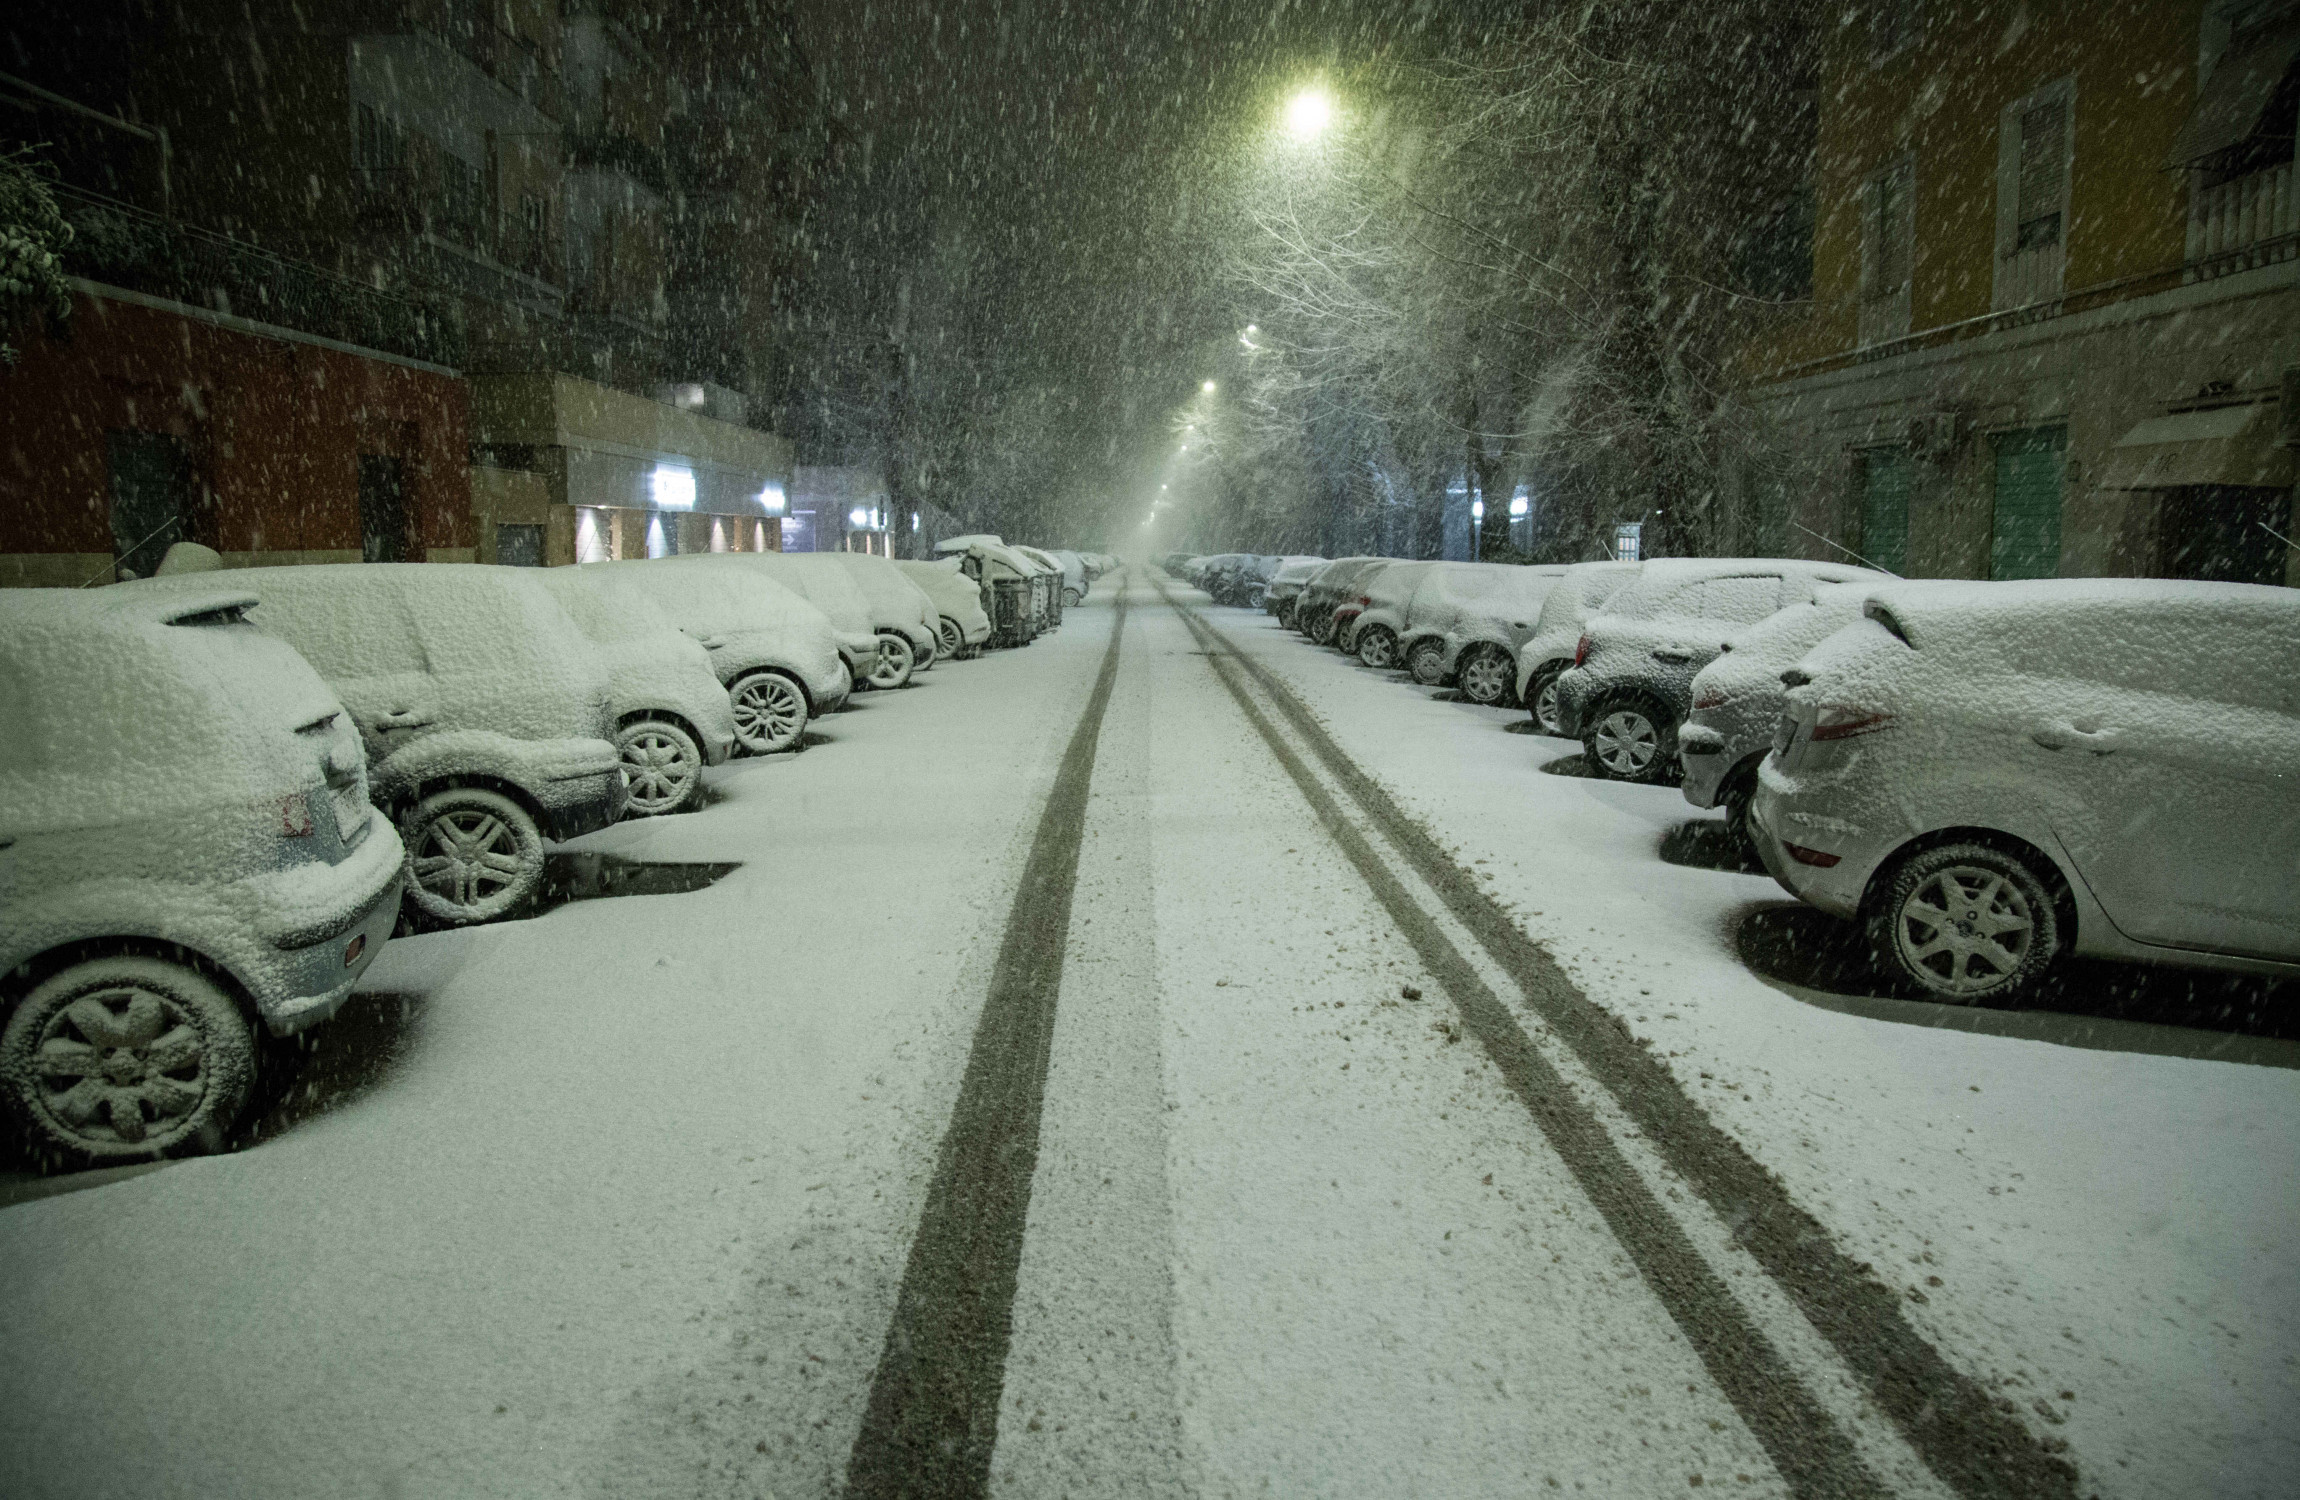 'Beast from the East': Europe shivers as Siberian blast send temperature crashing